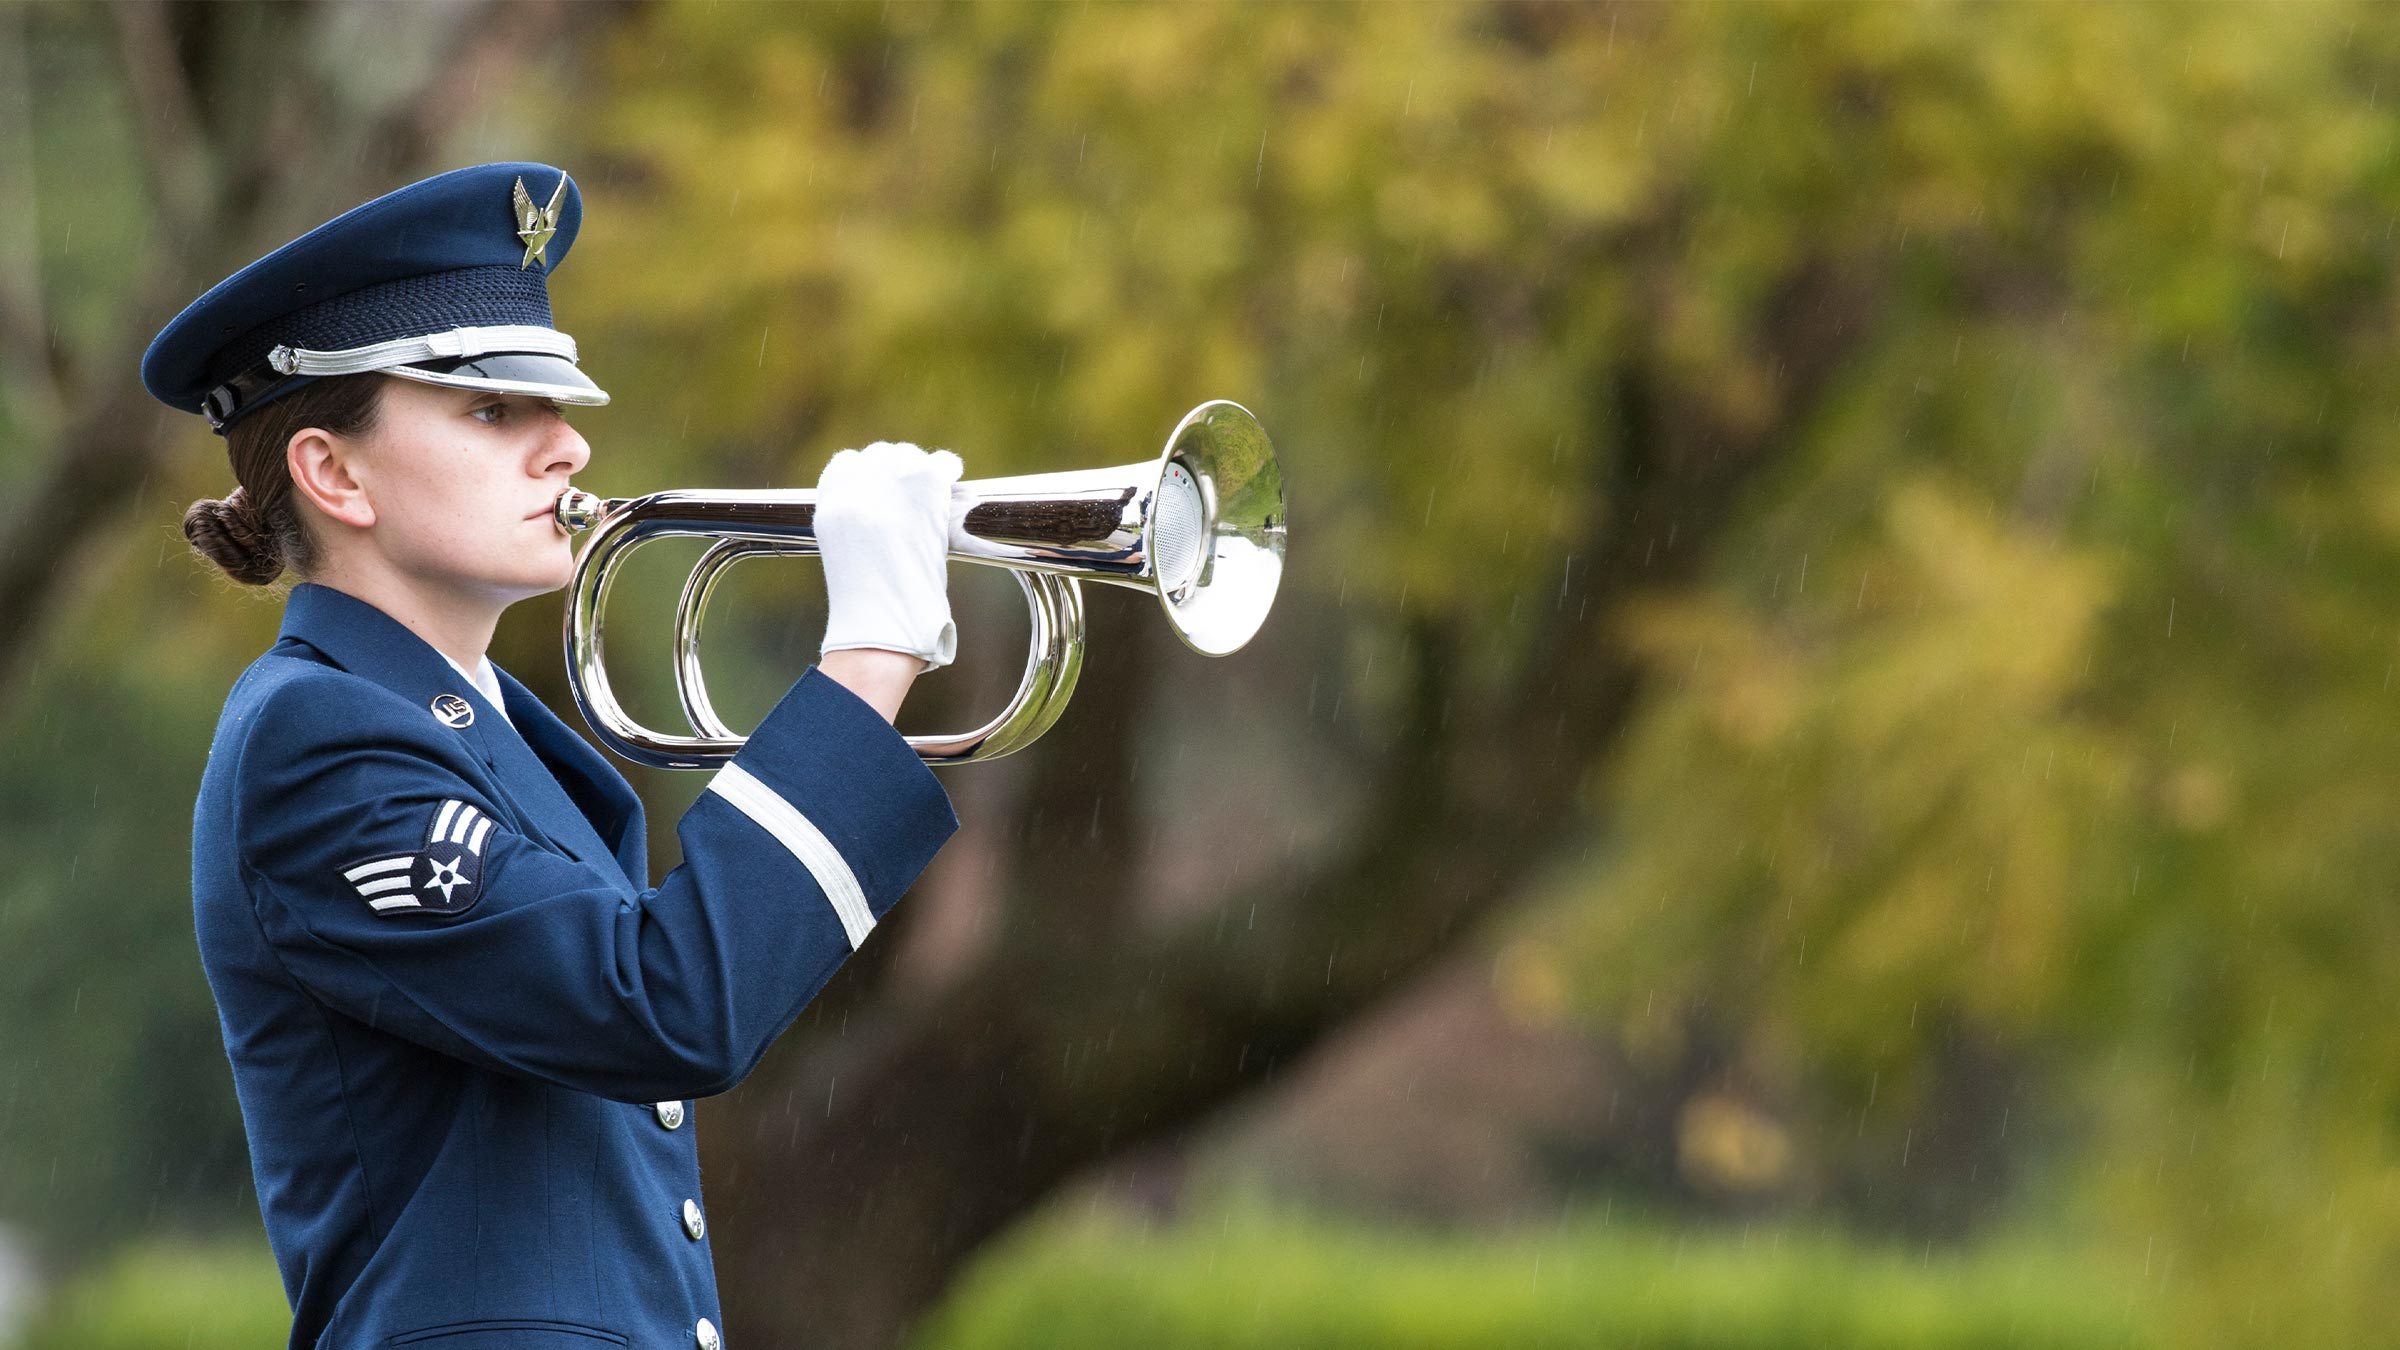 Female Airman plays Taps with a bugle during a U.S. Air Force funeral.